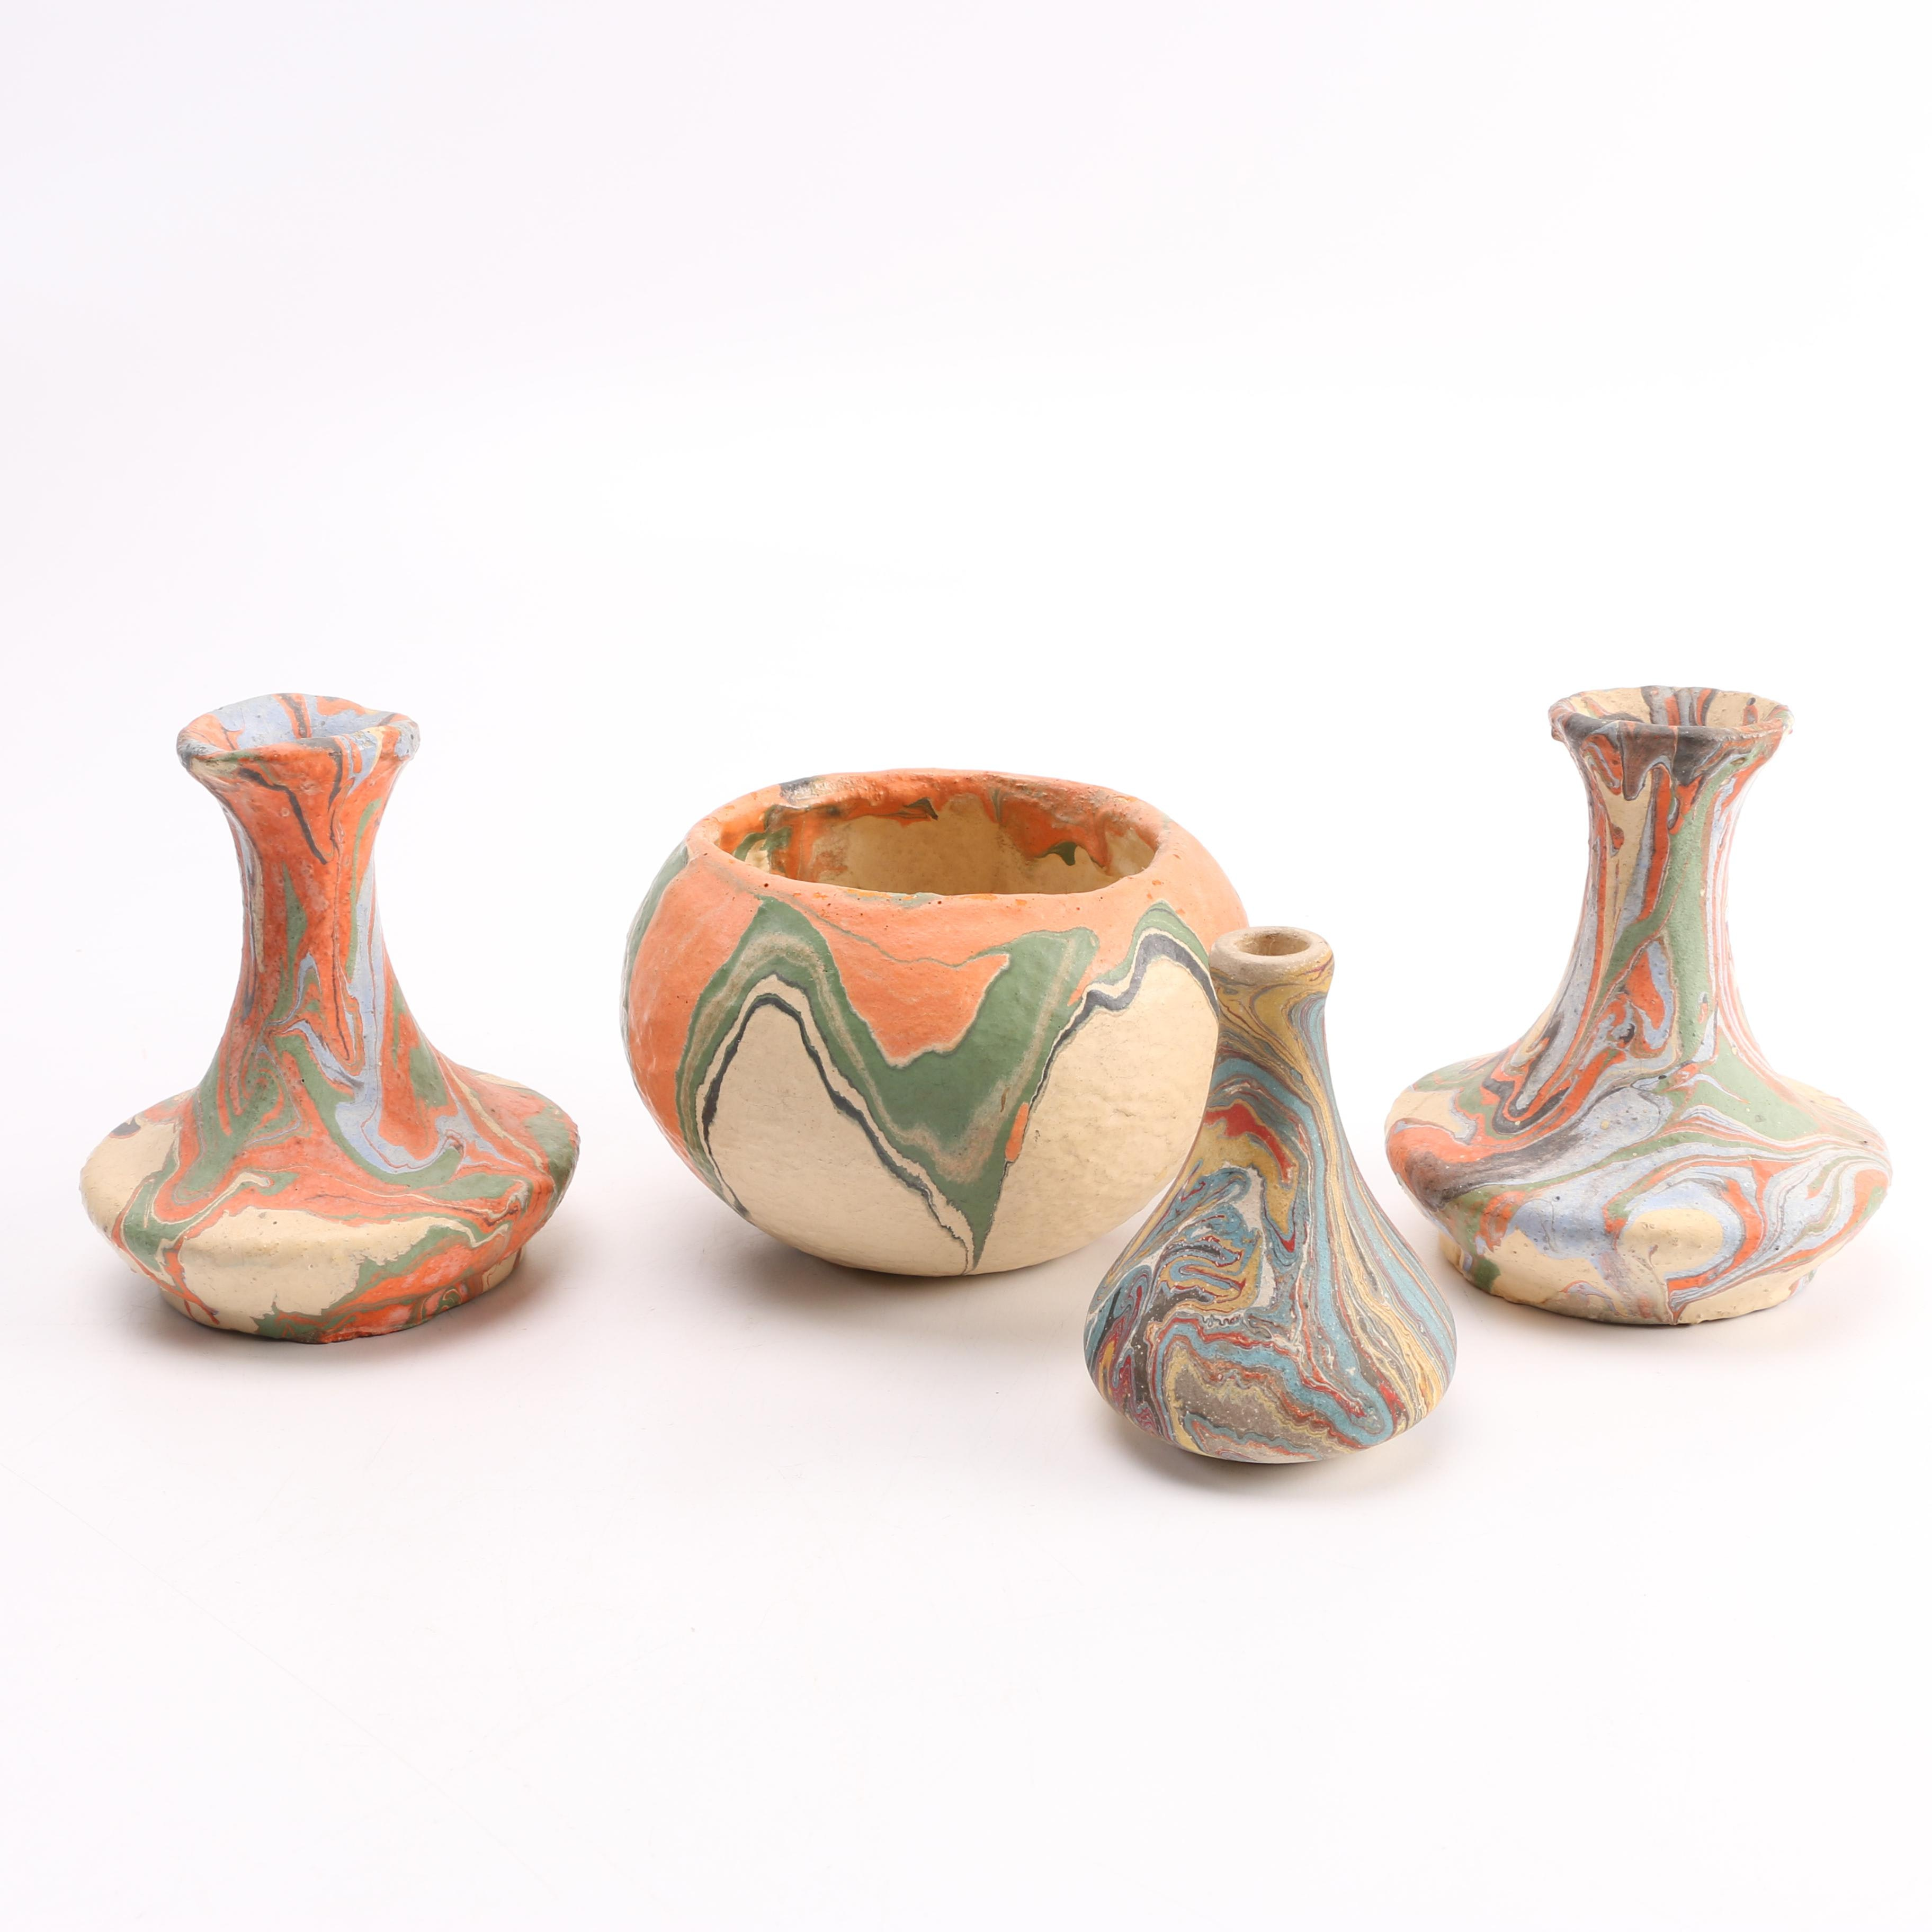 Group of Handmade Marbled Stoneware